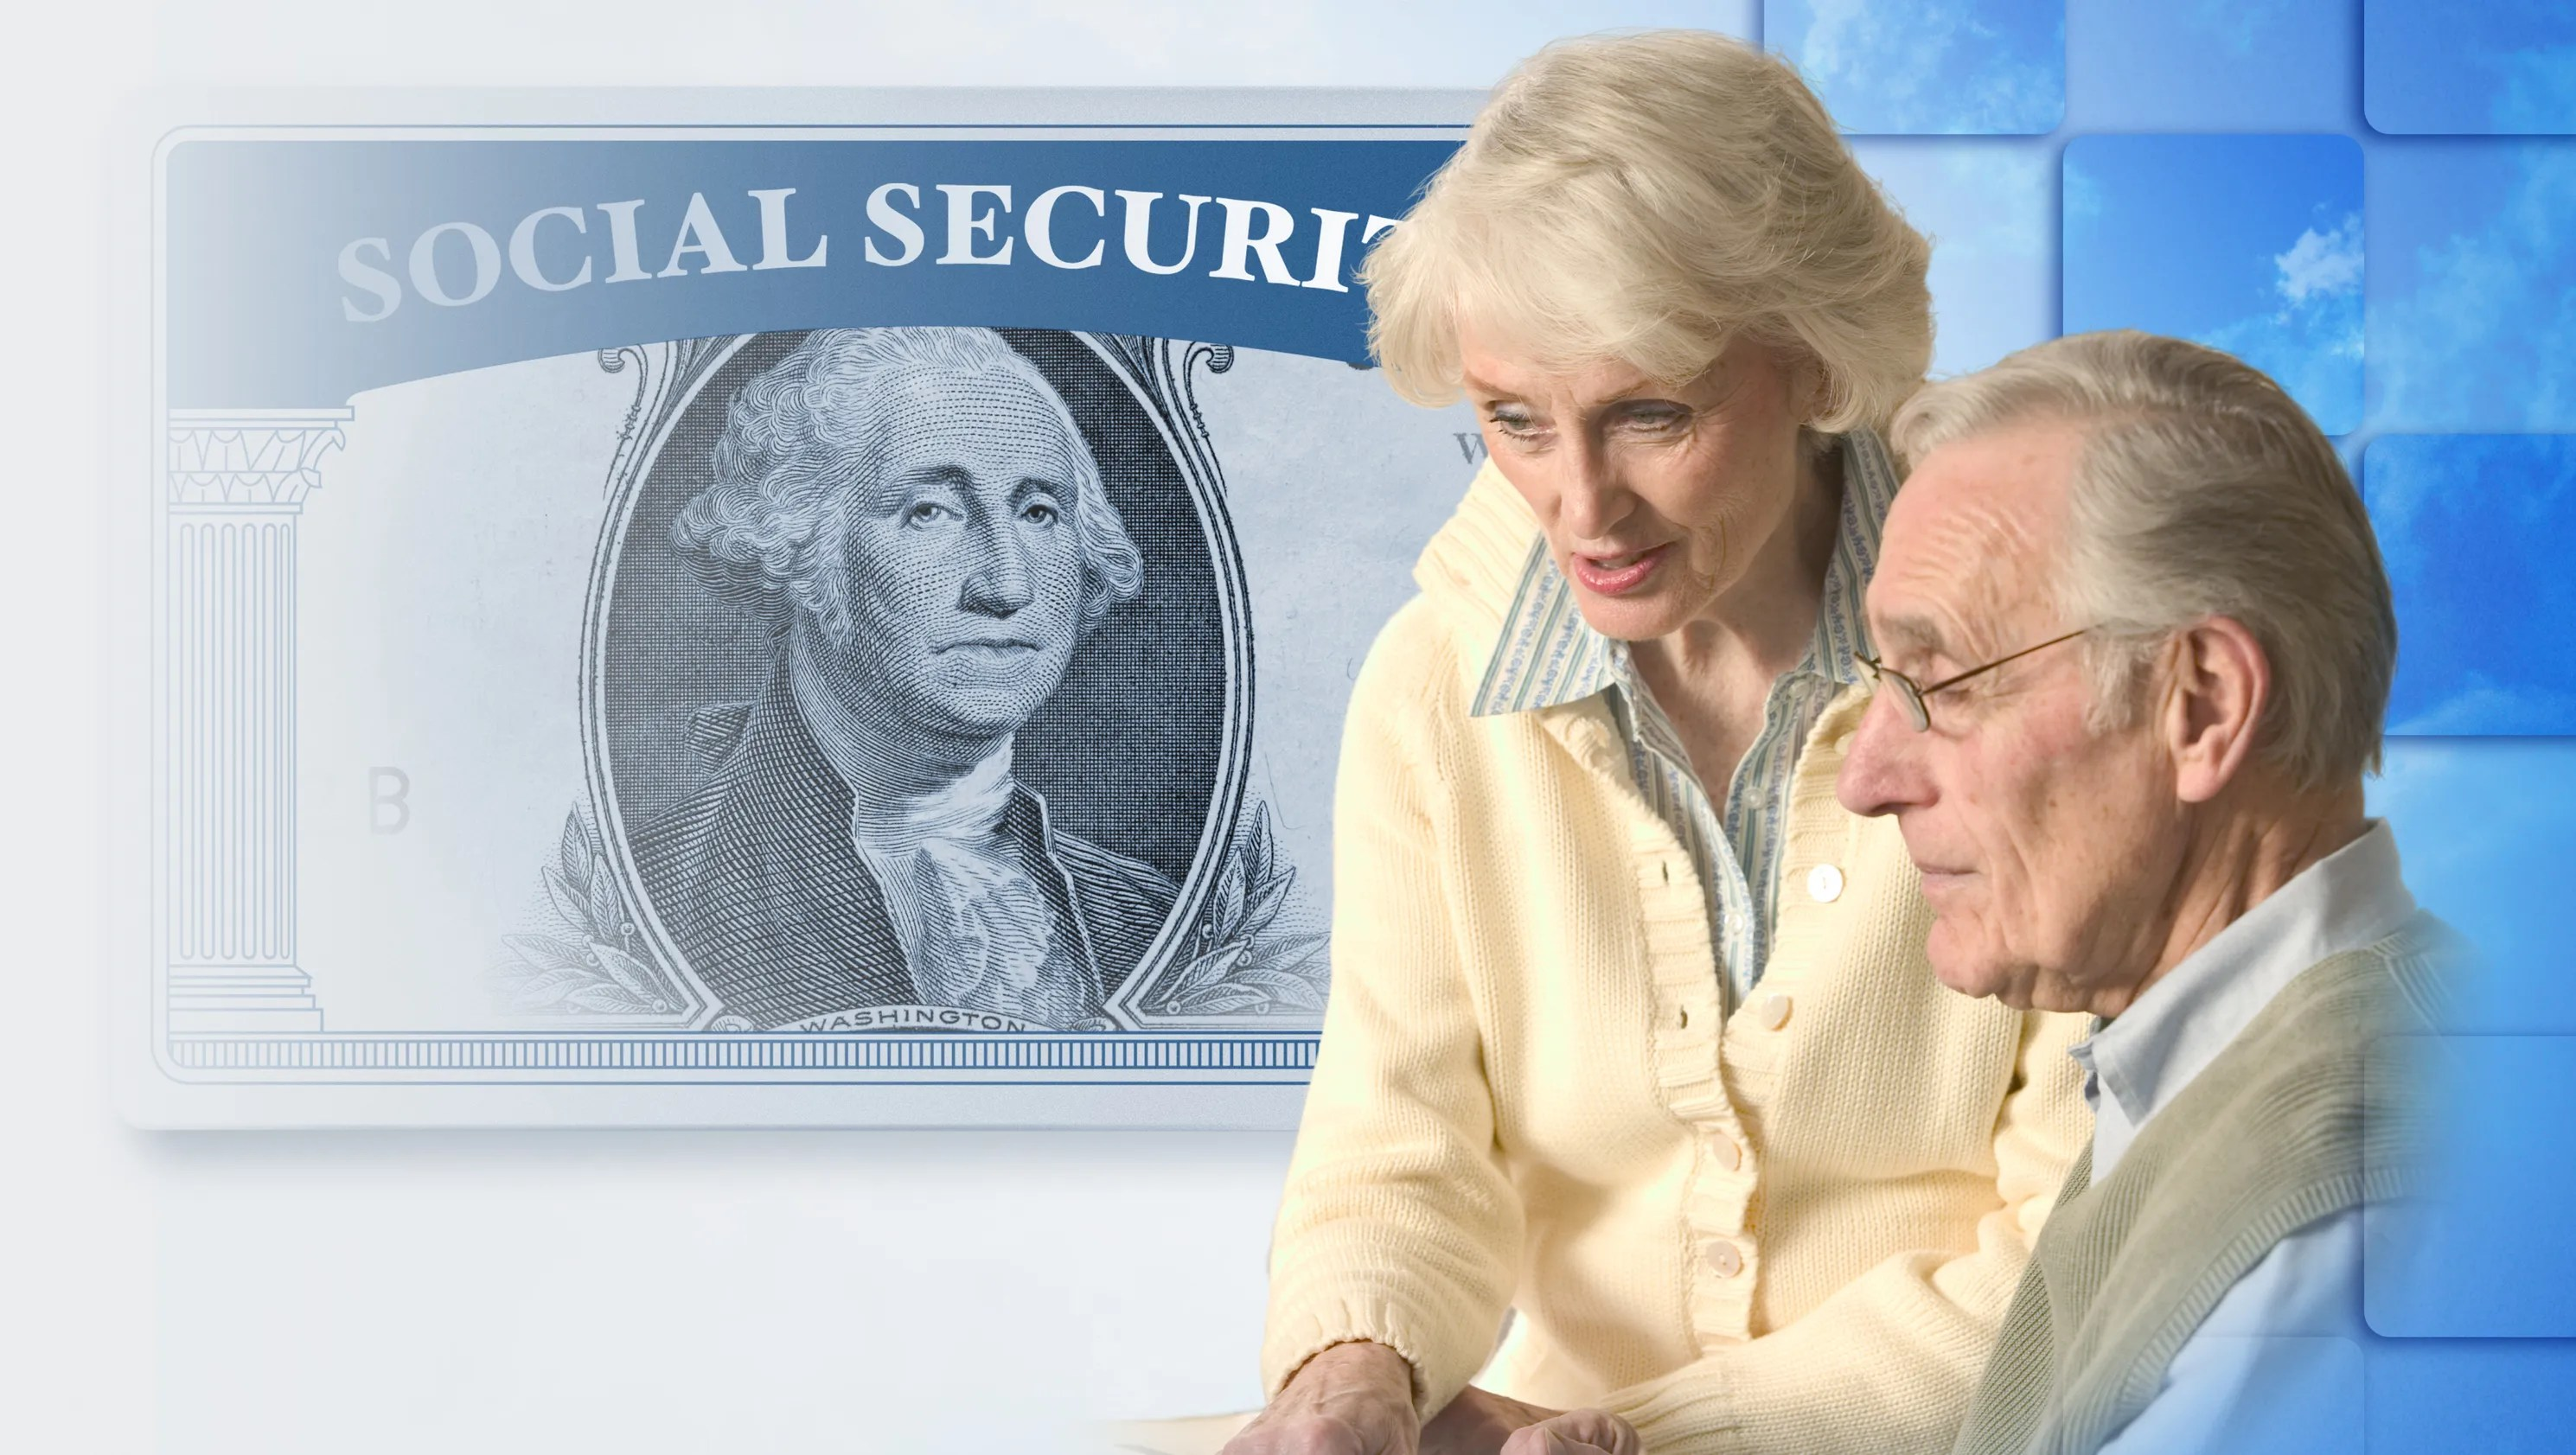 3 Questions To Ask Before Taking Your Social Security Benefits